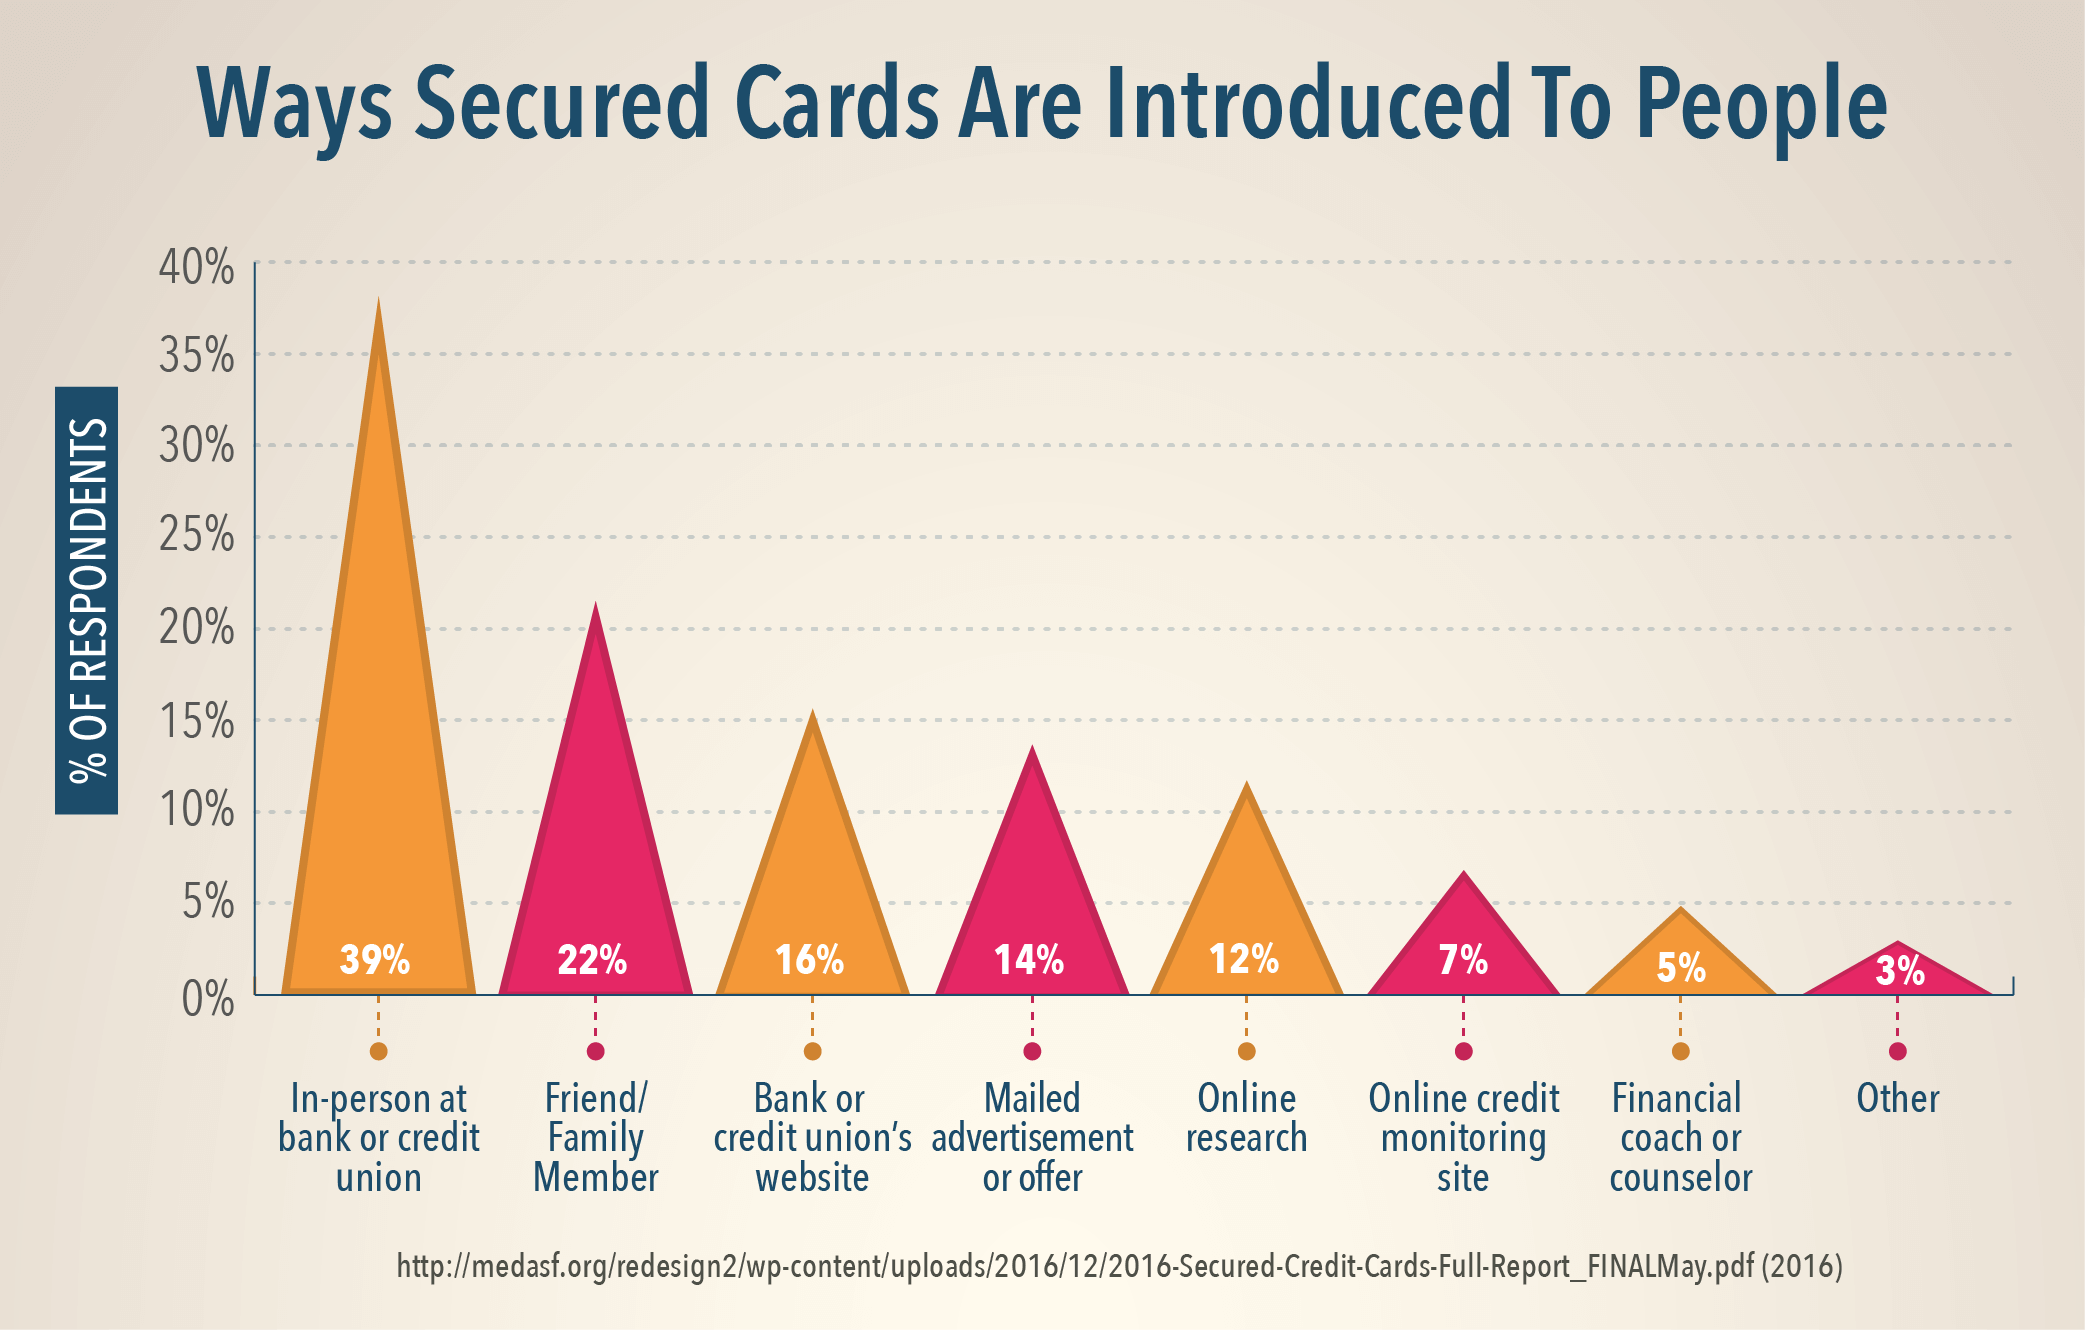 Ways Secured Cards Are Introduced To People